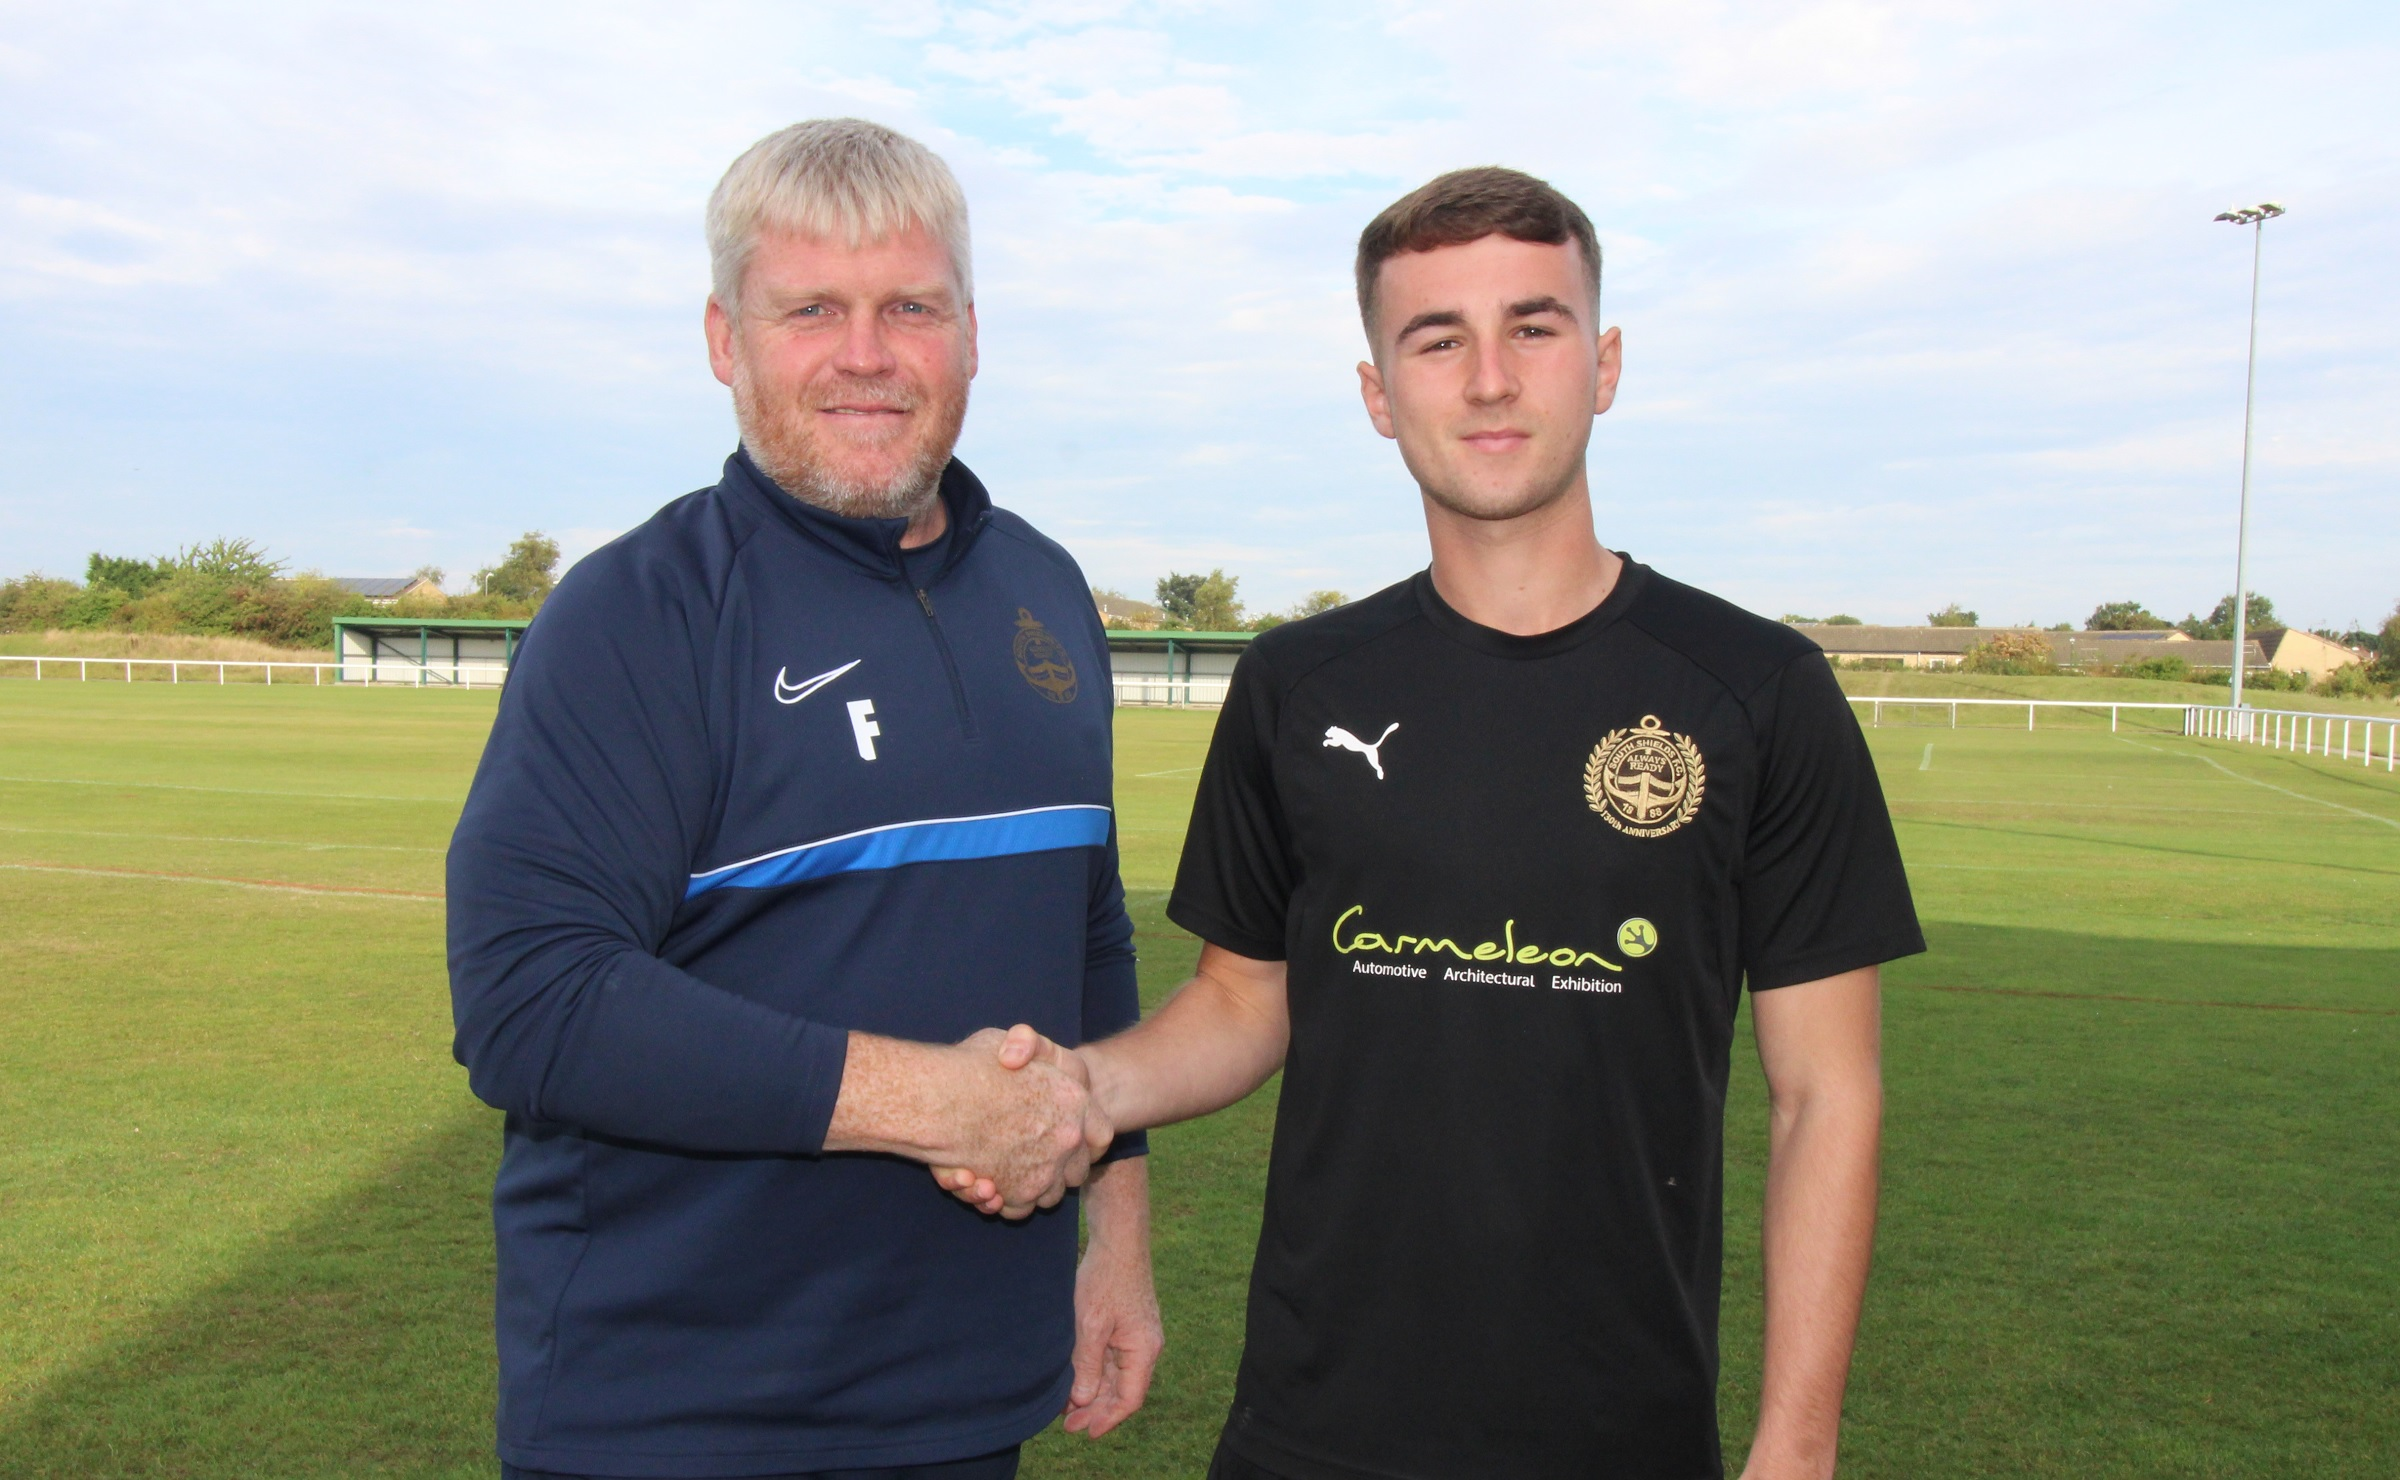 Dan Martin joins on loan from Accrington Stanley